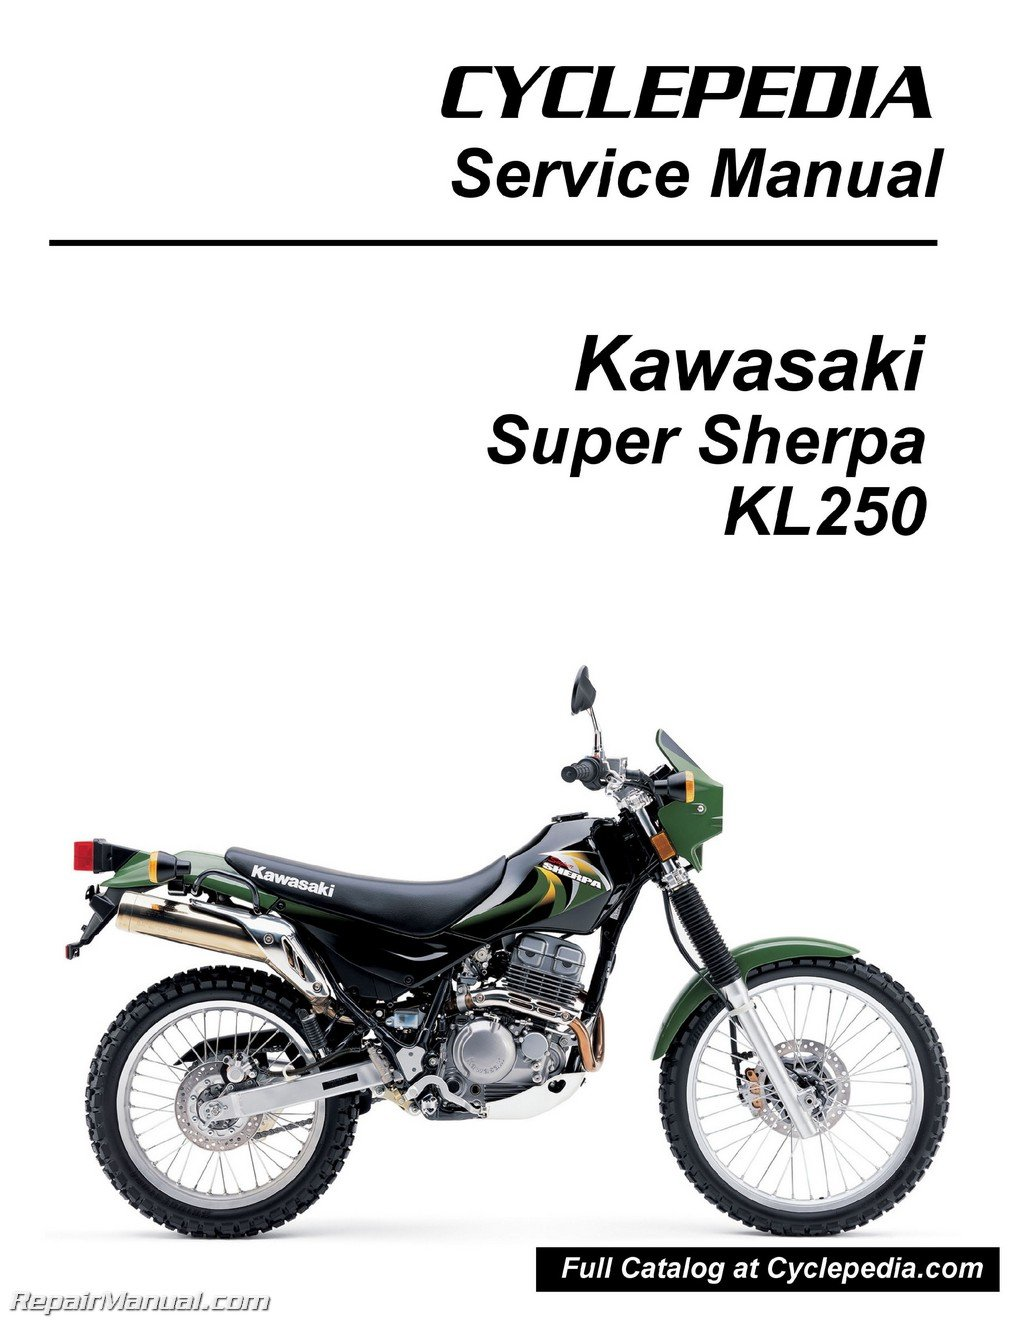 Kawasaki Super Sherpa Wiring Diagram List Of Schematic Circuit Mad Dog Scooter Cpp 188 P Kl250 Motorcycle Service Manual Rh Amazon Com